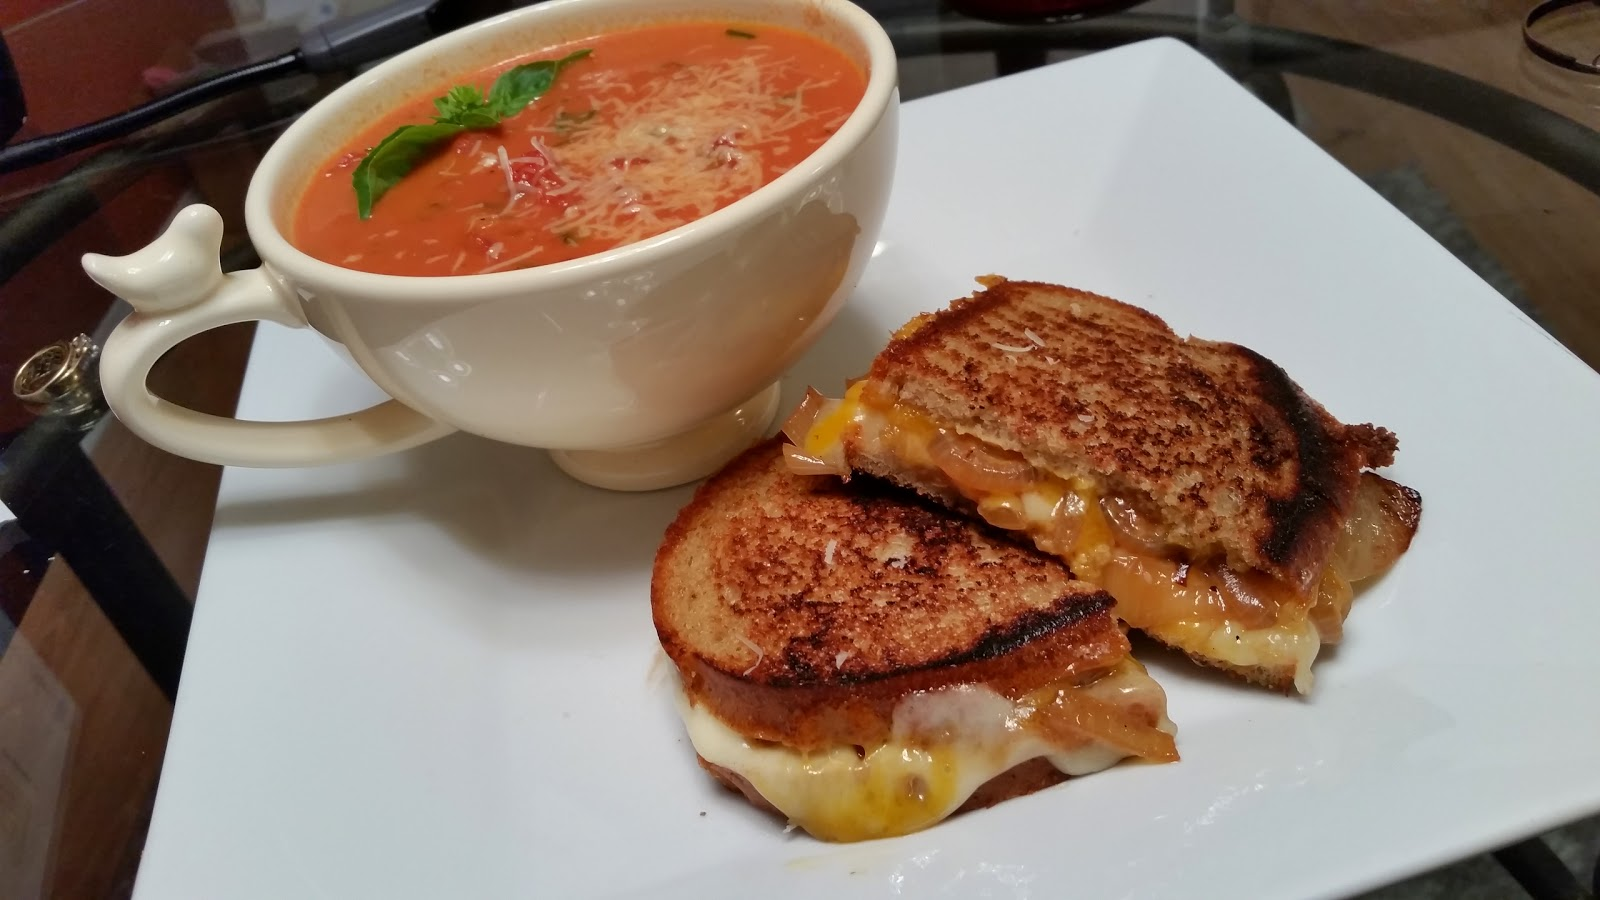 Alexandria Nicole : Creamy Tomato Soup + Grilled Cheese